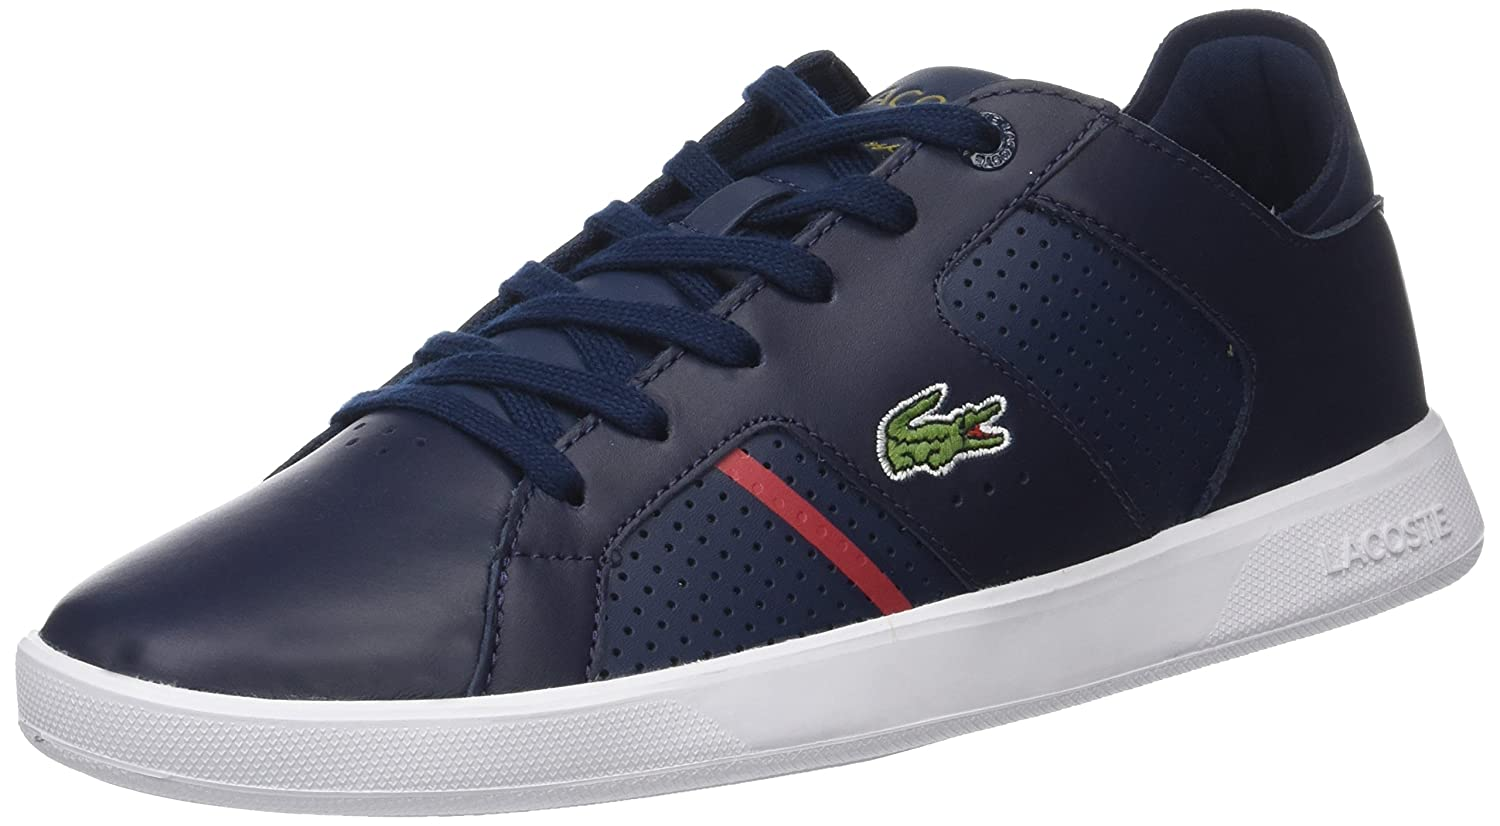 Amazon.com | Lacoste Mens Navy/Red Novas 118 1 Sneakers-UK 11 | Fashion Sneakers